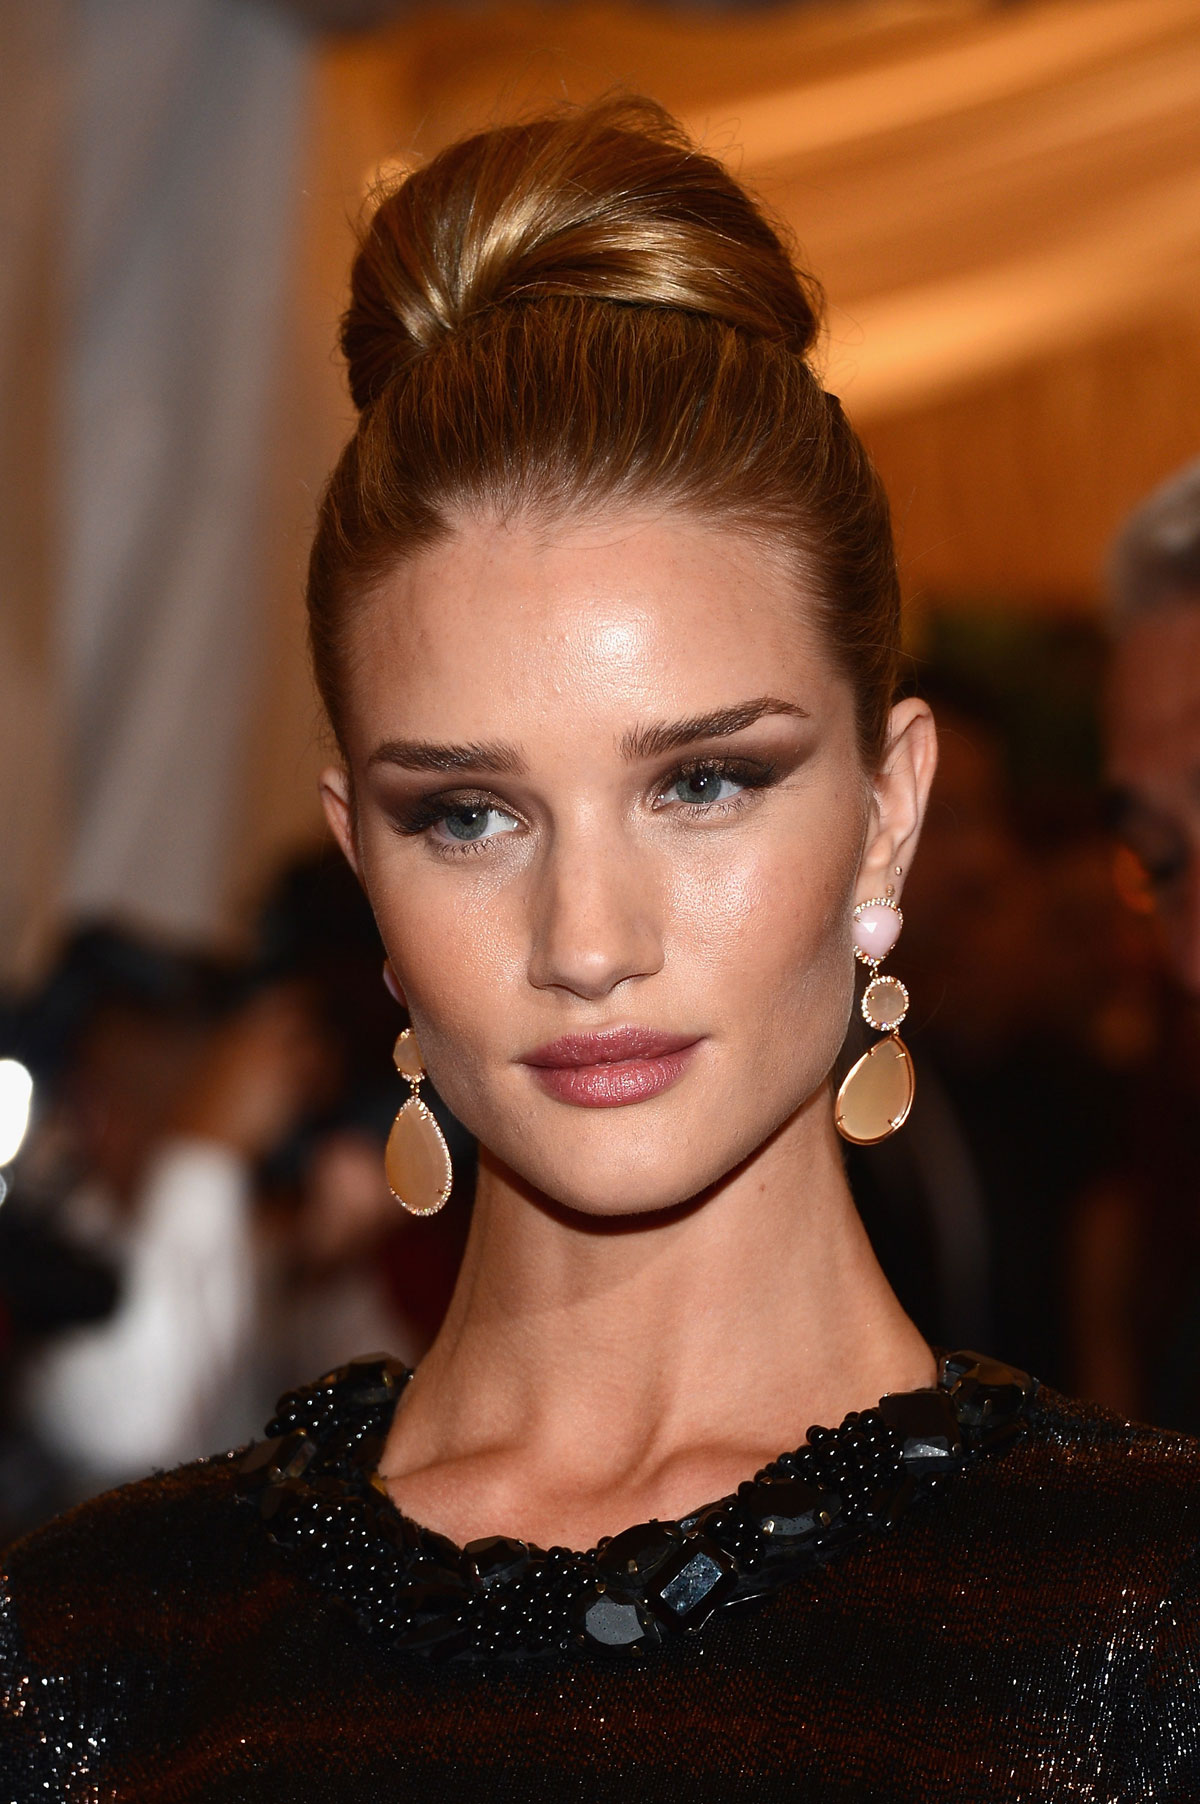 ROSIE HUNTINGTON WHITELEY at Metropolitan Museum of Art's Costume Gala 2012 in New York